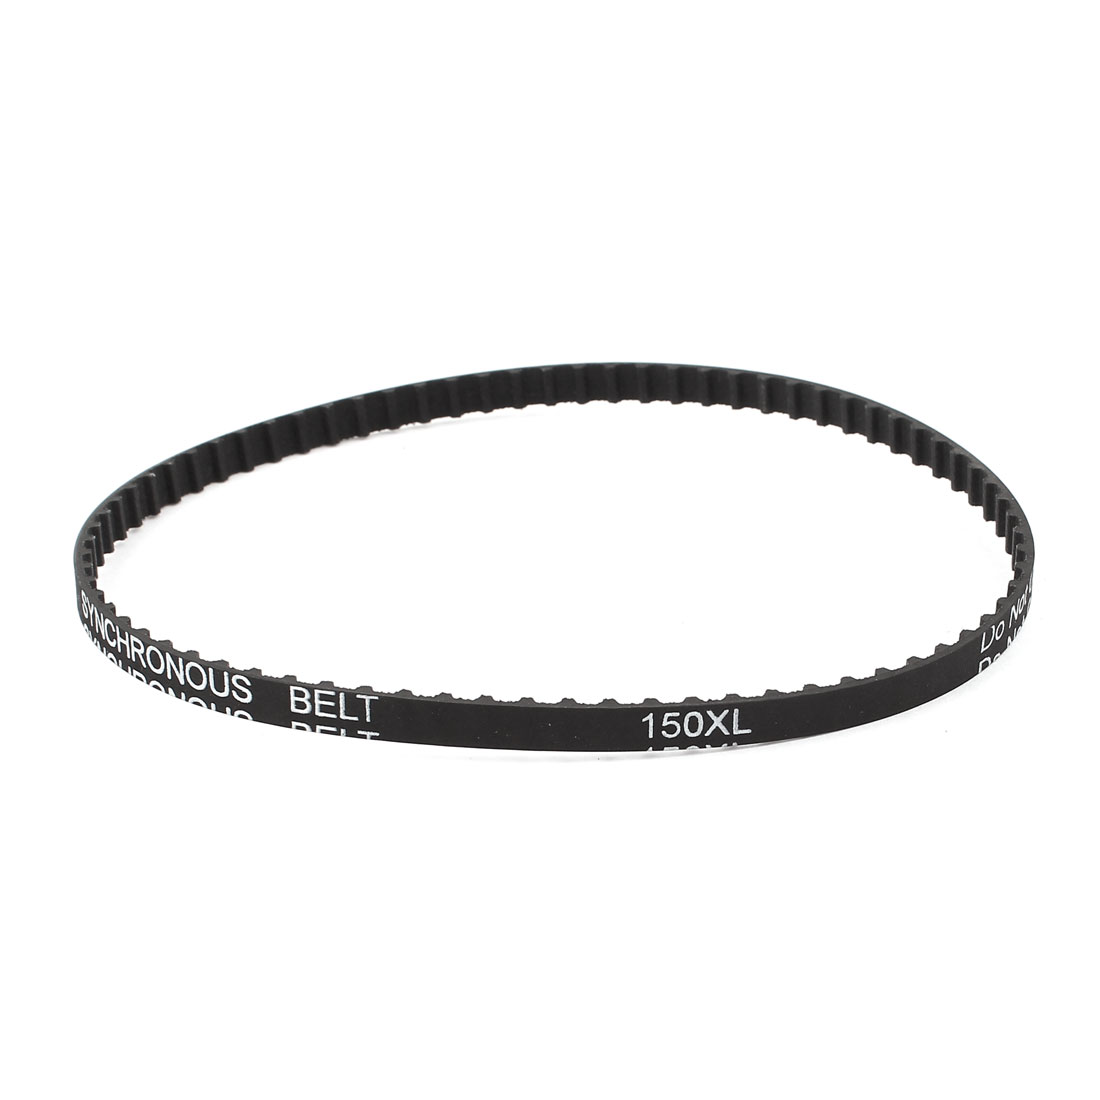 150XL 025 75 Teeth 5.08mm Pitch 6.4mm Width Industrial Timing Belt 381mm